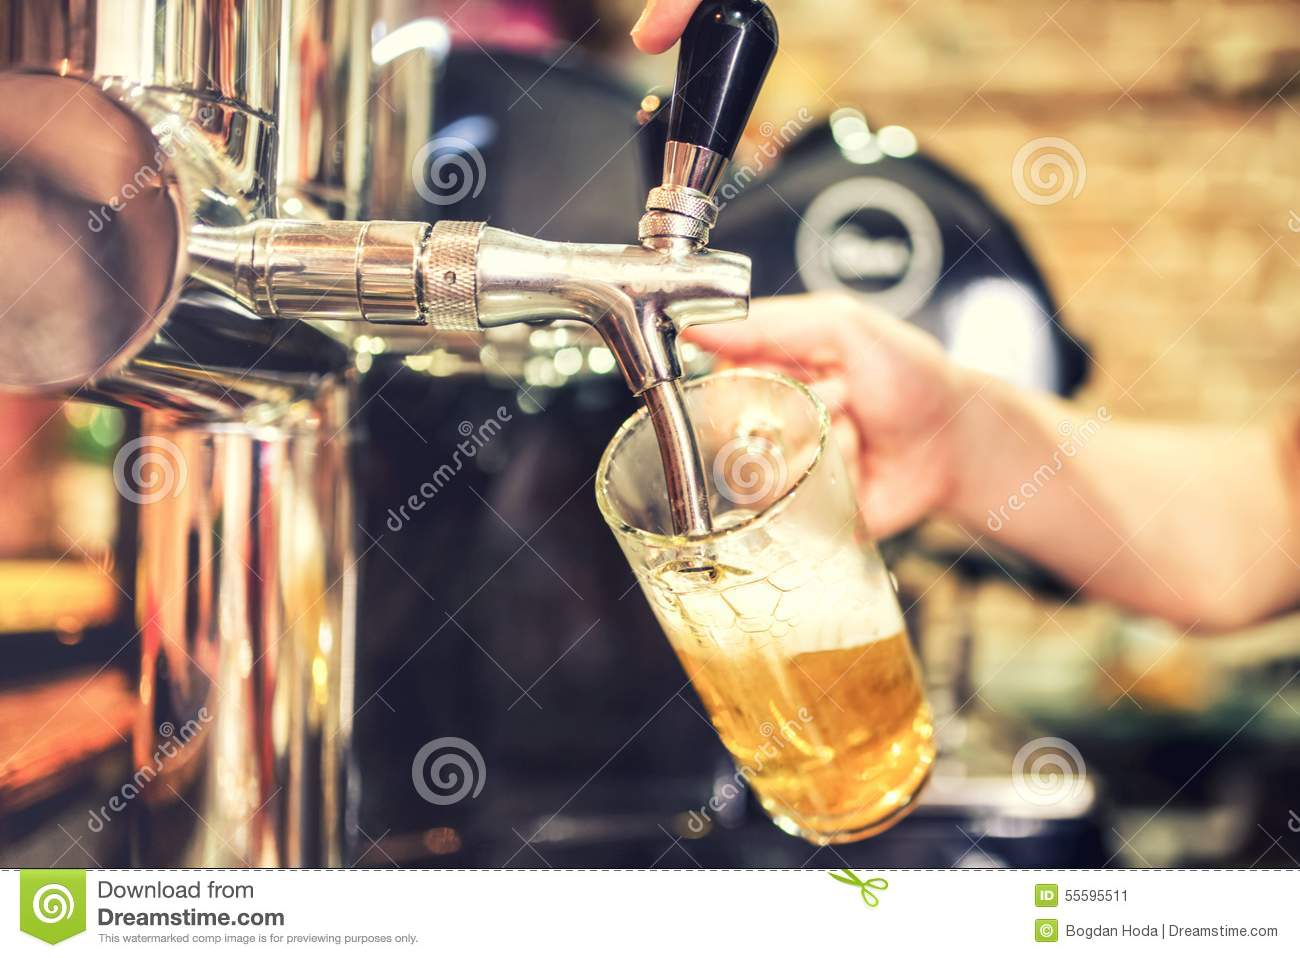 Barman hand at beer tap pouring a draught lager beer serving in a restaurant